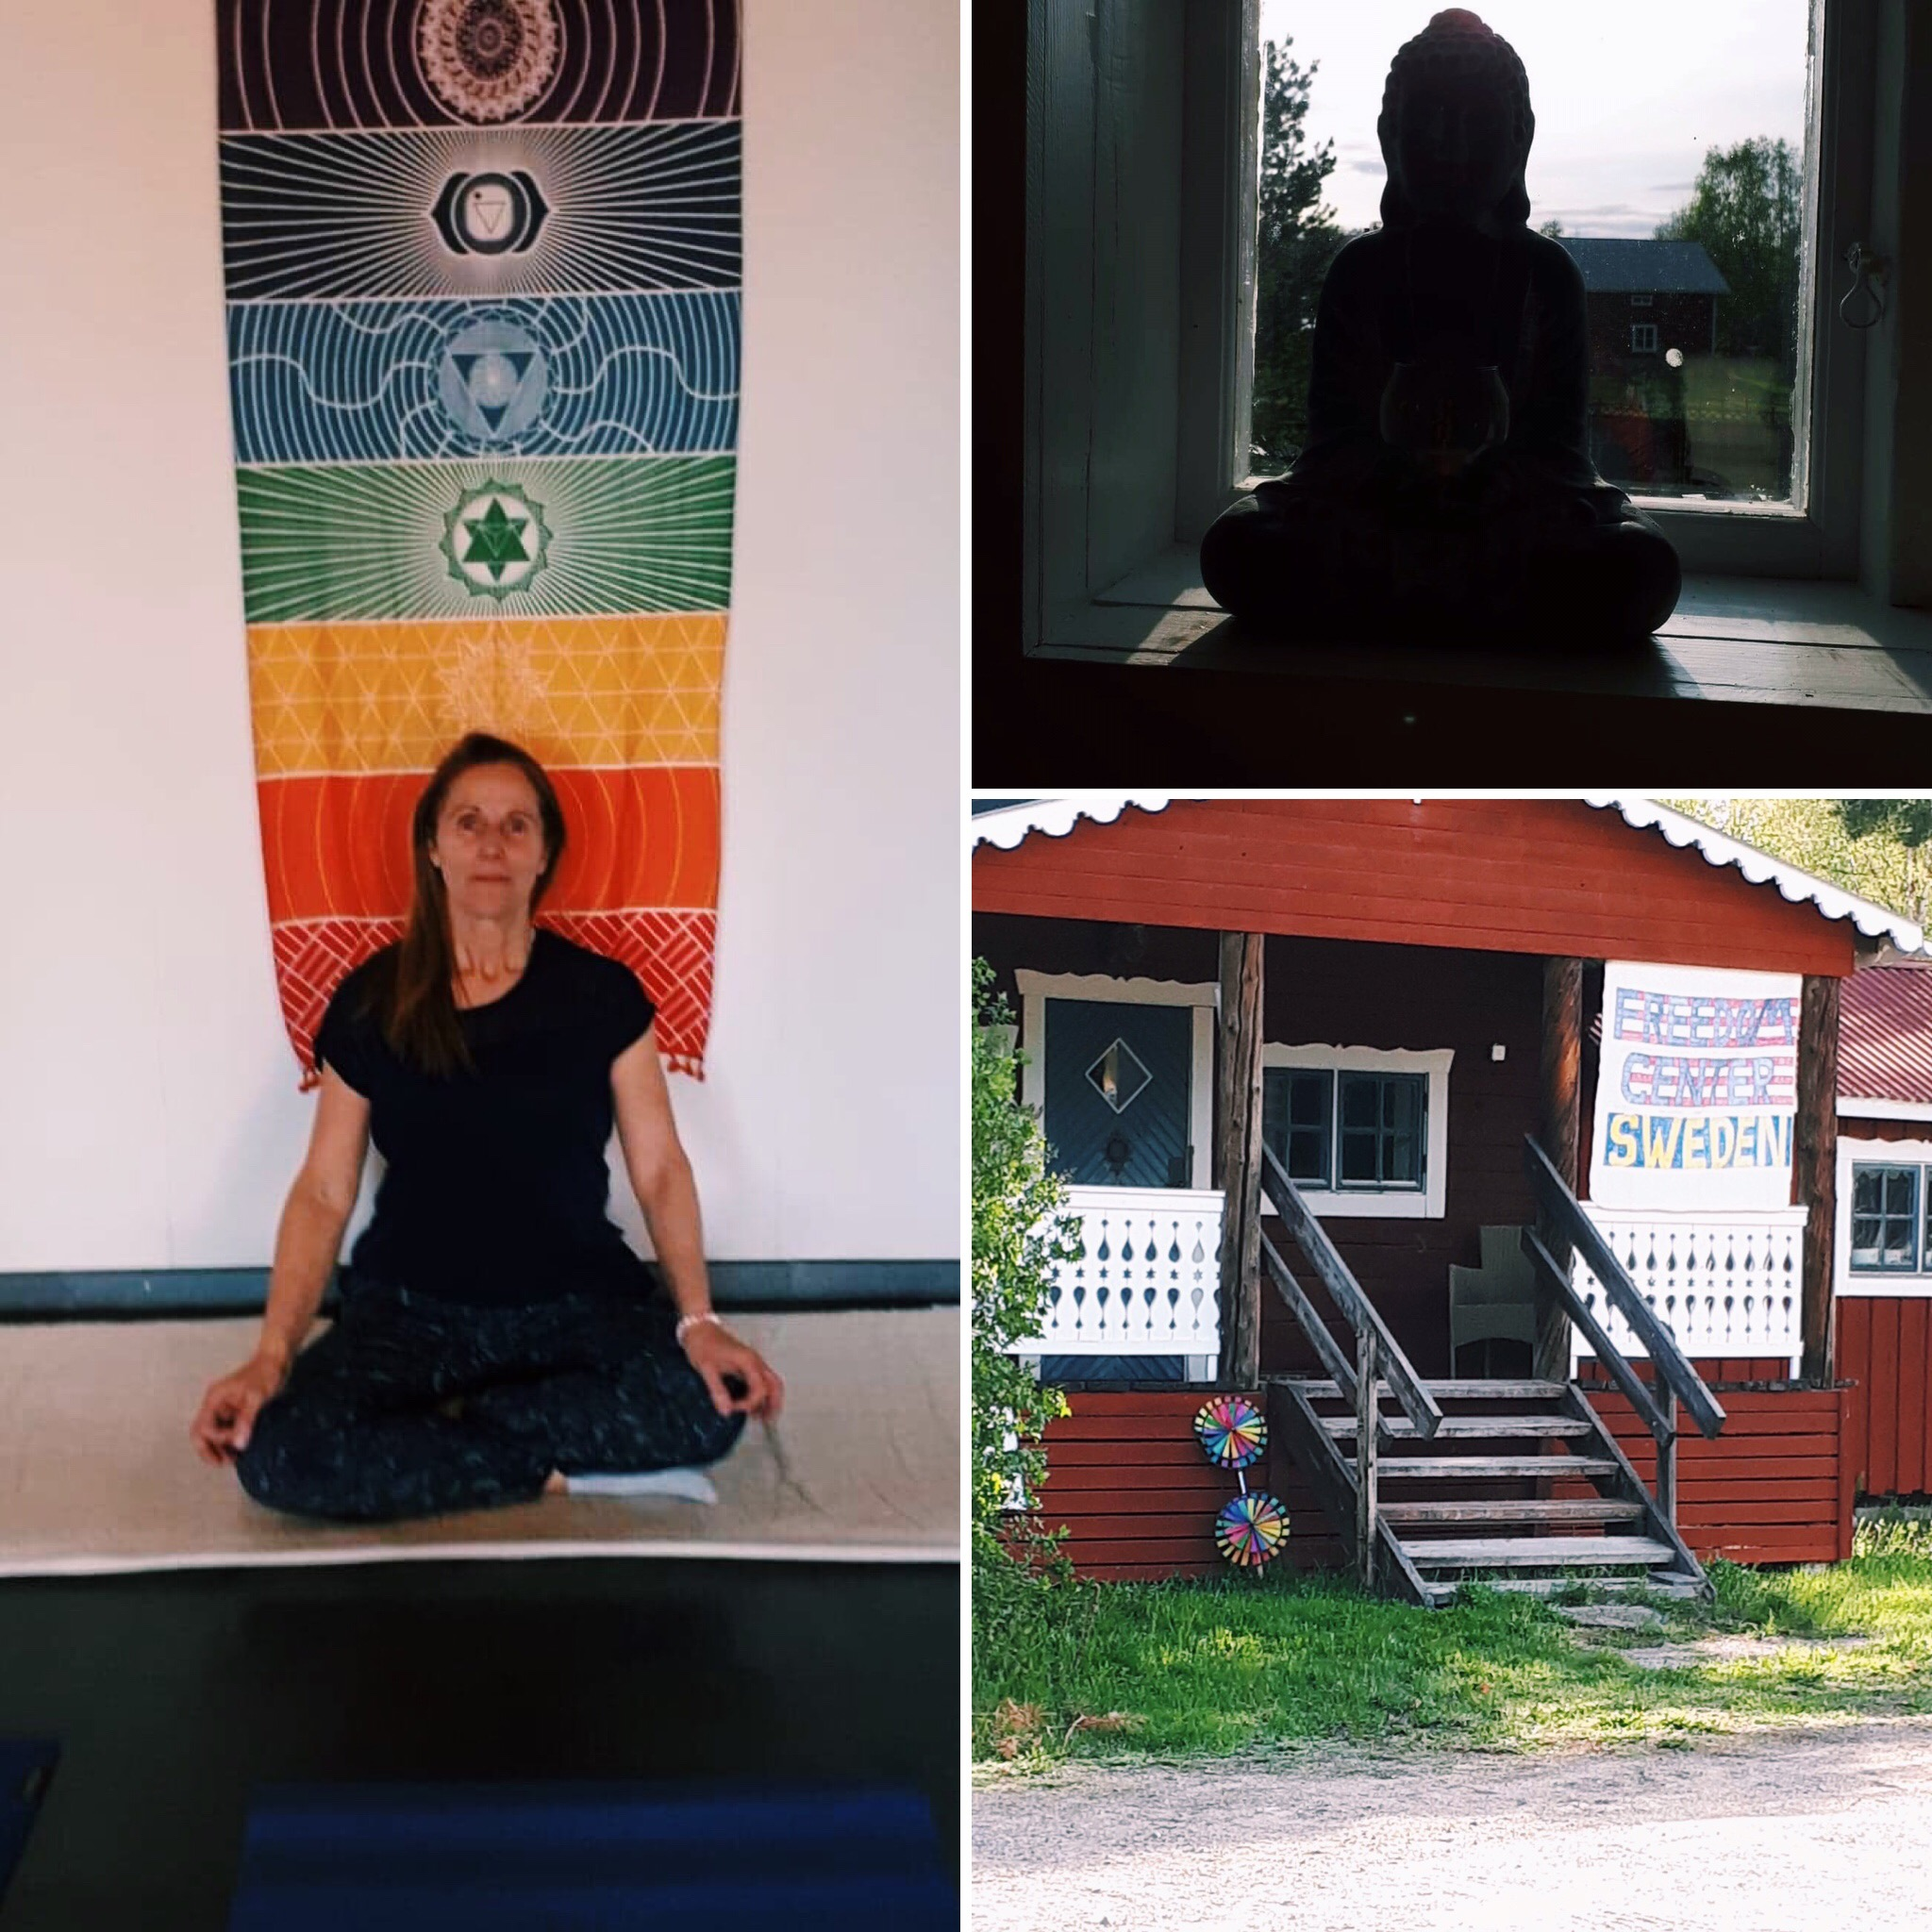 18 May Wellness pop-up - Laura did children and family yoga sessions at Färila Freedom Center among other held classes within the topic of Wellness: Ayurveda, Breathwork, Mediyoga etc.